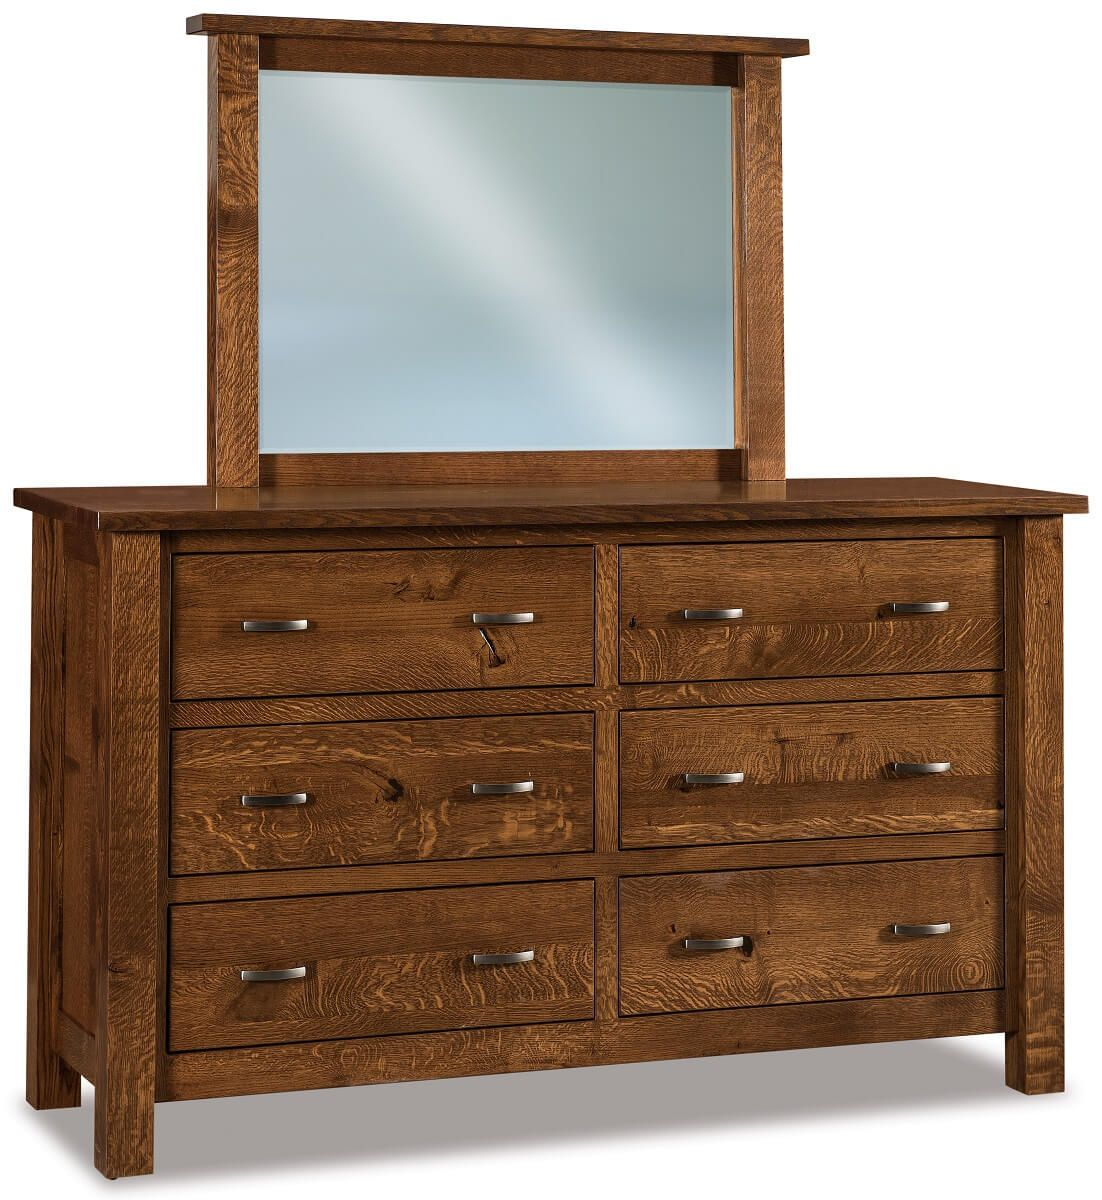 Harper 6-Drawer Dresser